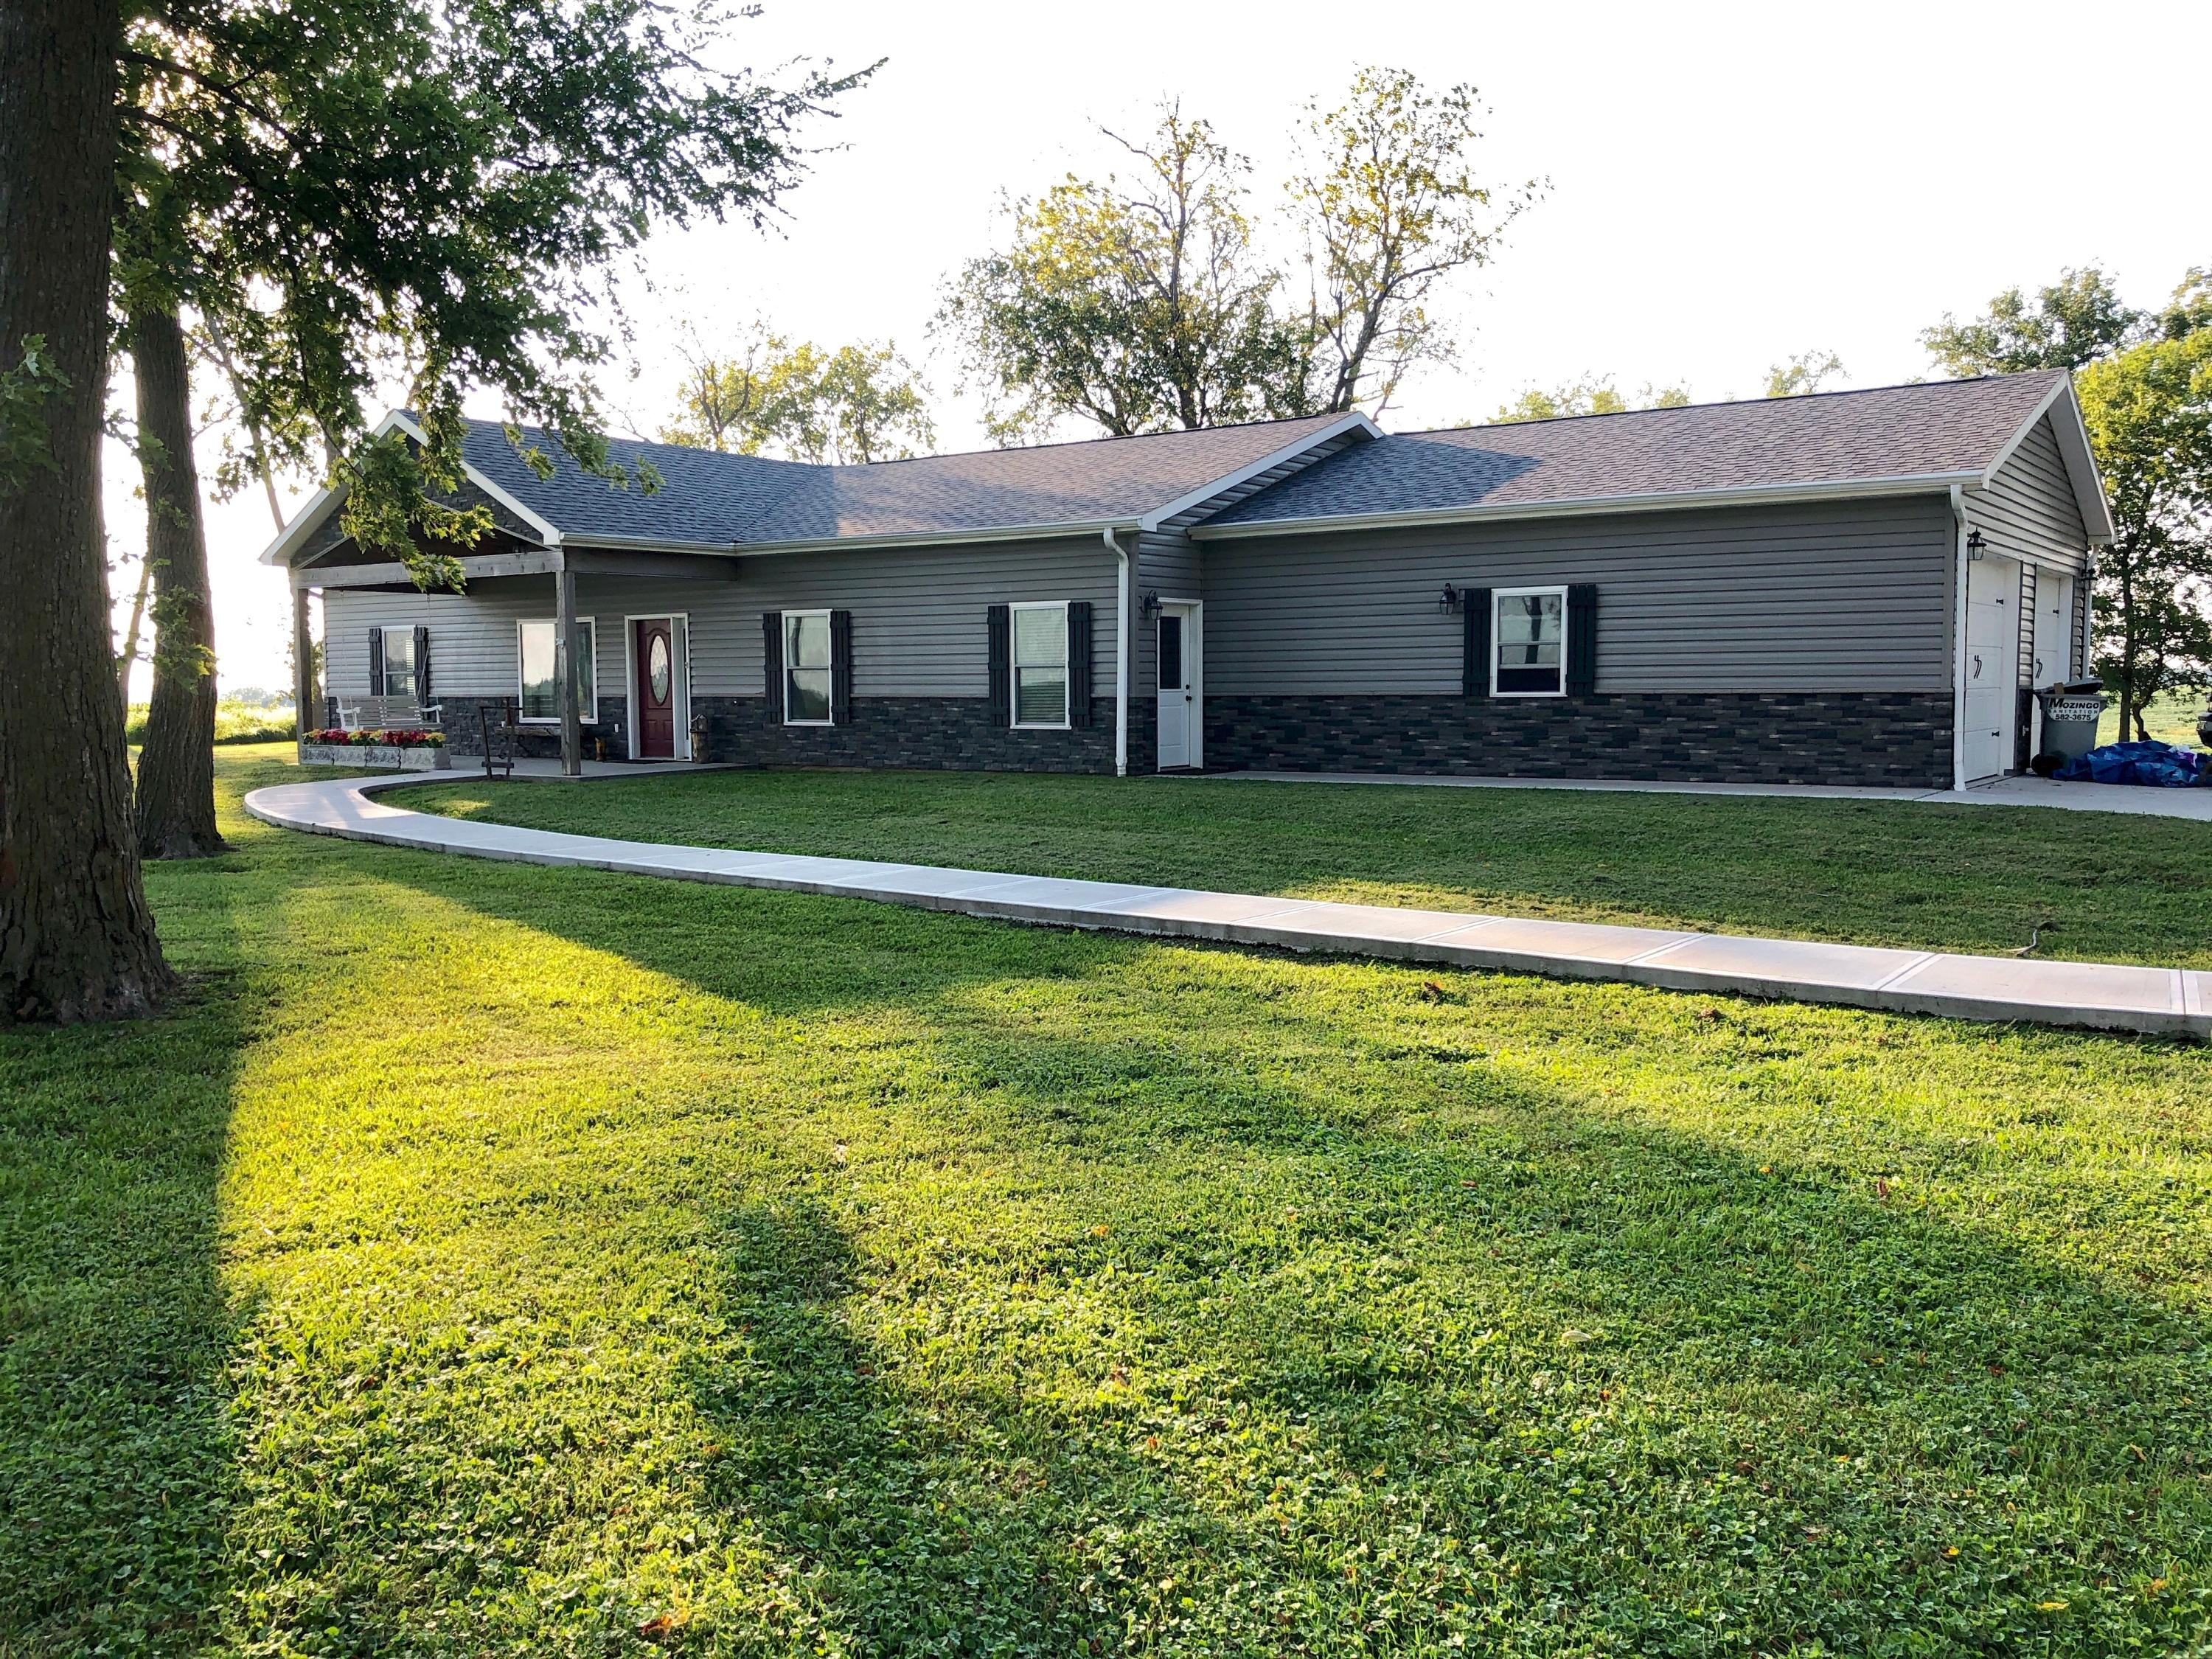 26251 238TH ST, Maryville, Missouri 64468, 3 Bedrooms Bedrooms, ,3 BathroomsBathrooms,Residential,238TH,4554